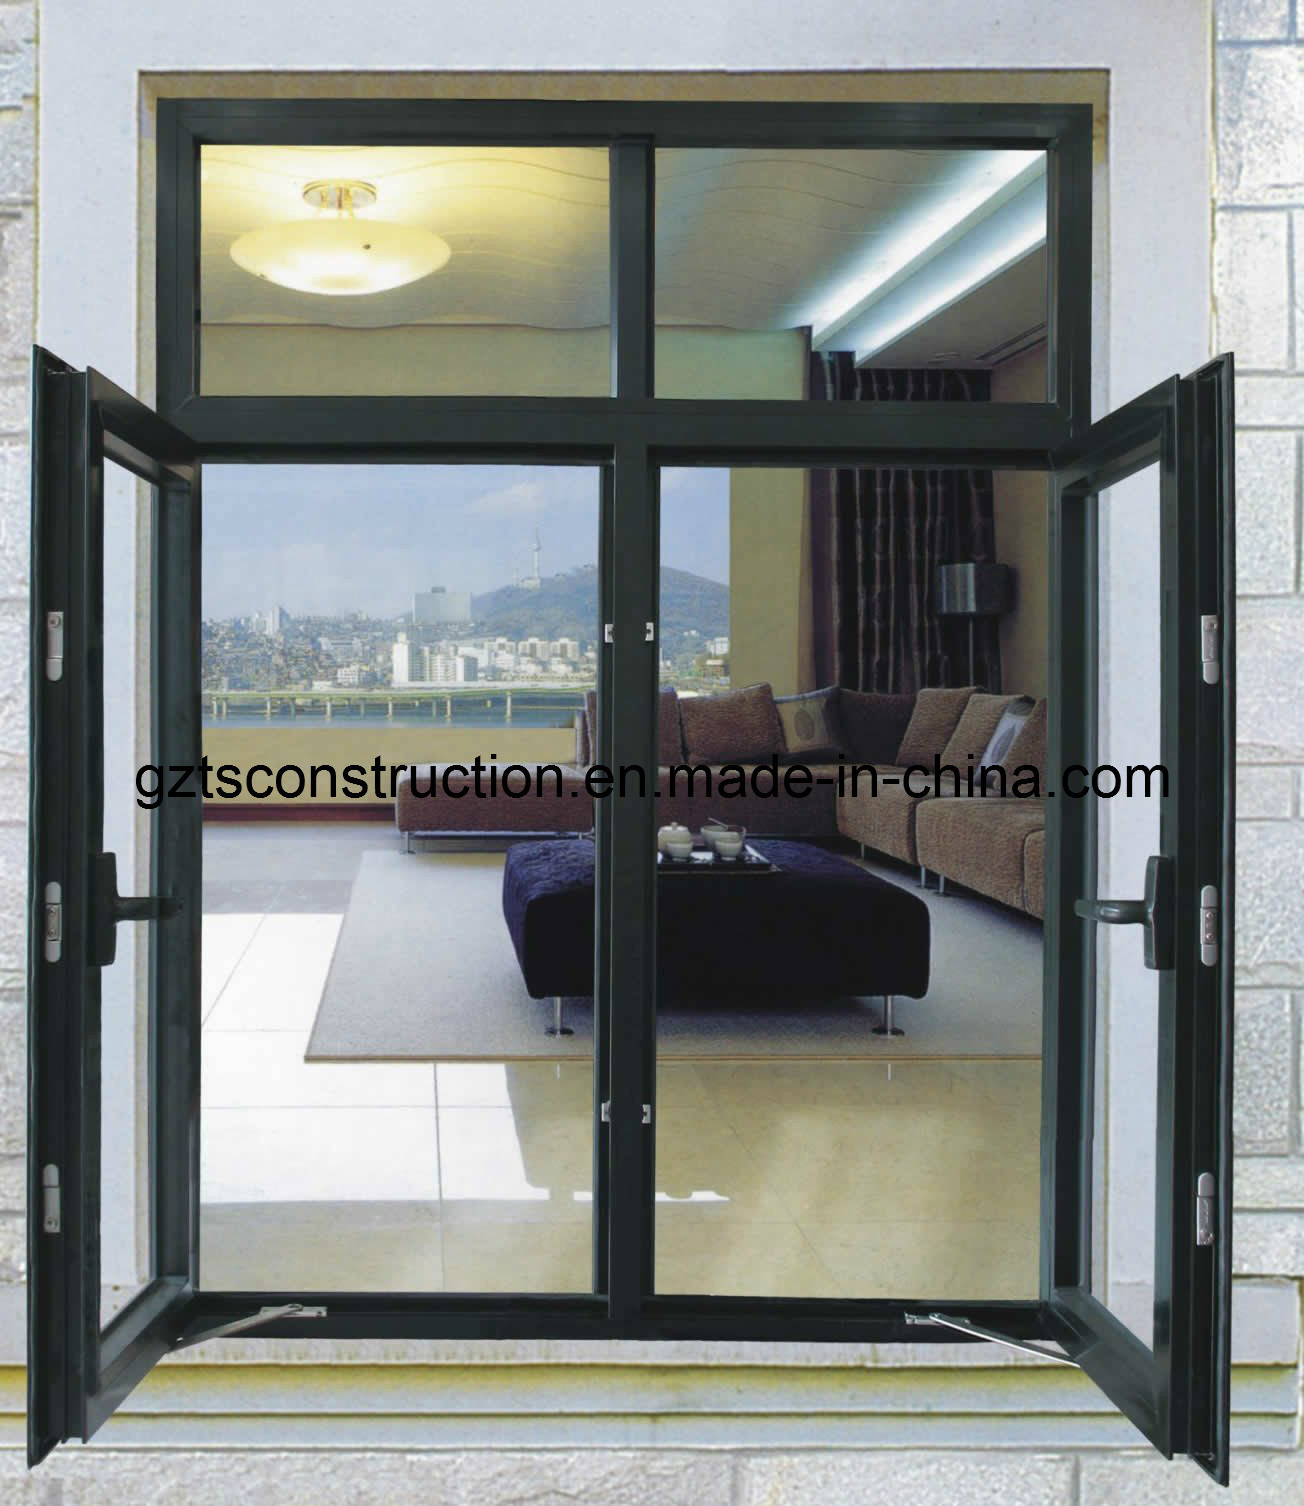 Customzied Double Glazing Aluminium Casement Window with Roller Shutter